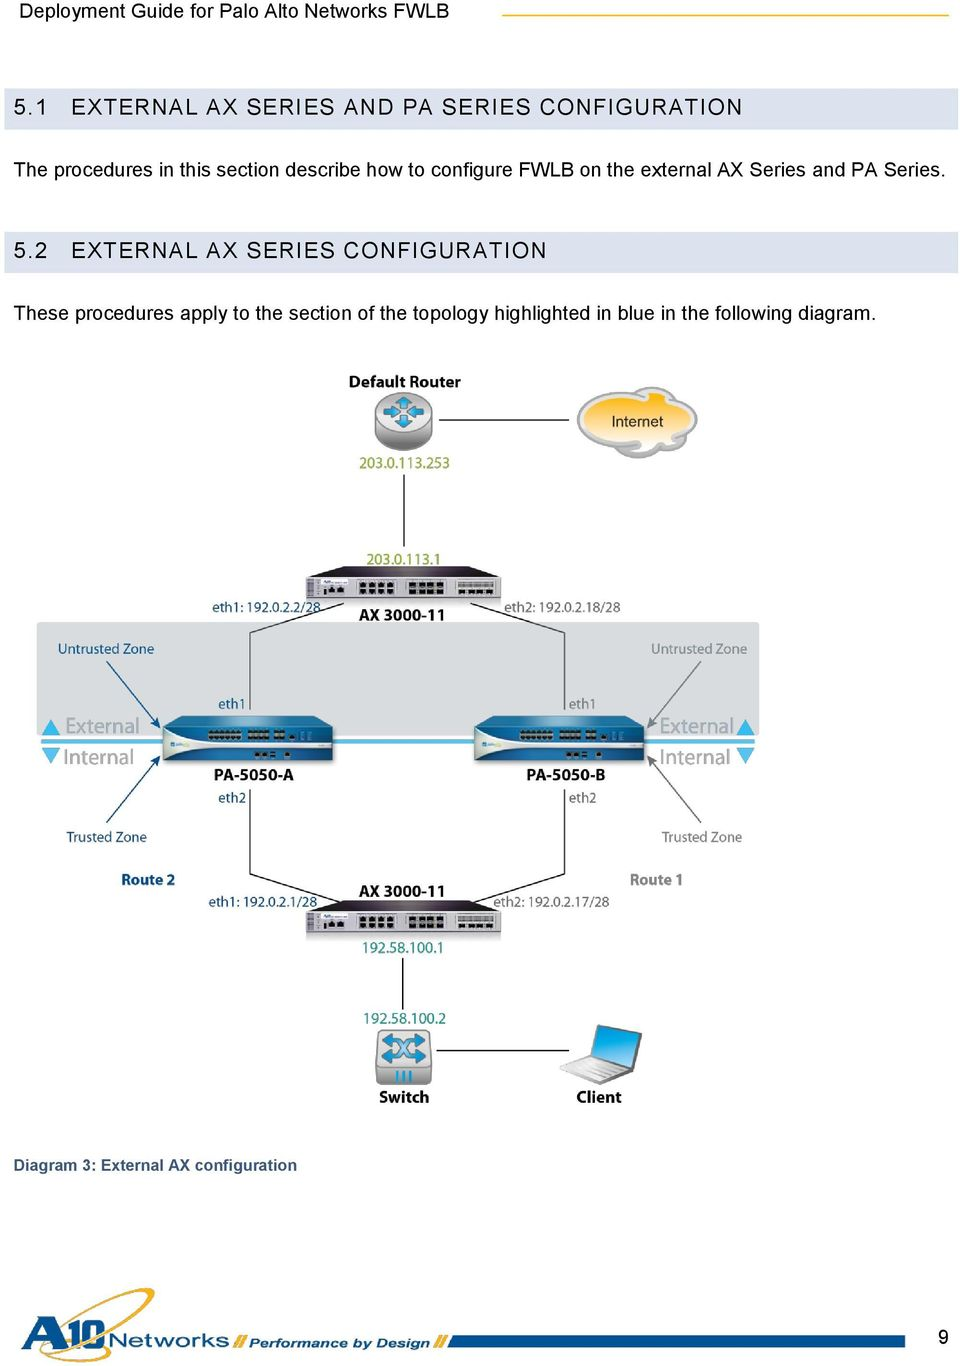 2 EXTERNAL AX SERIES CONFIGURATION These procedures apply to the section of the